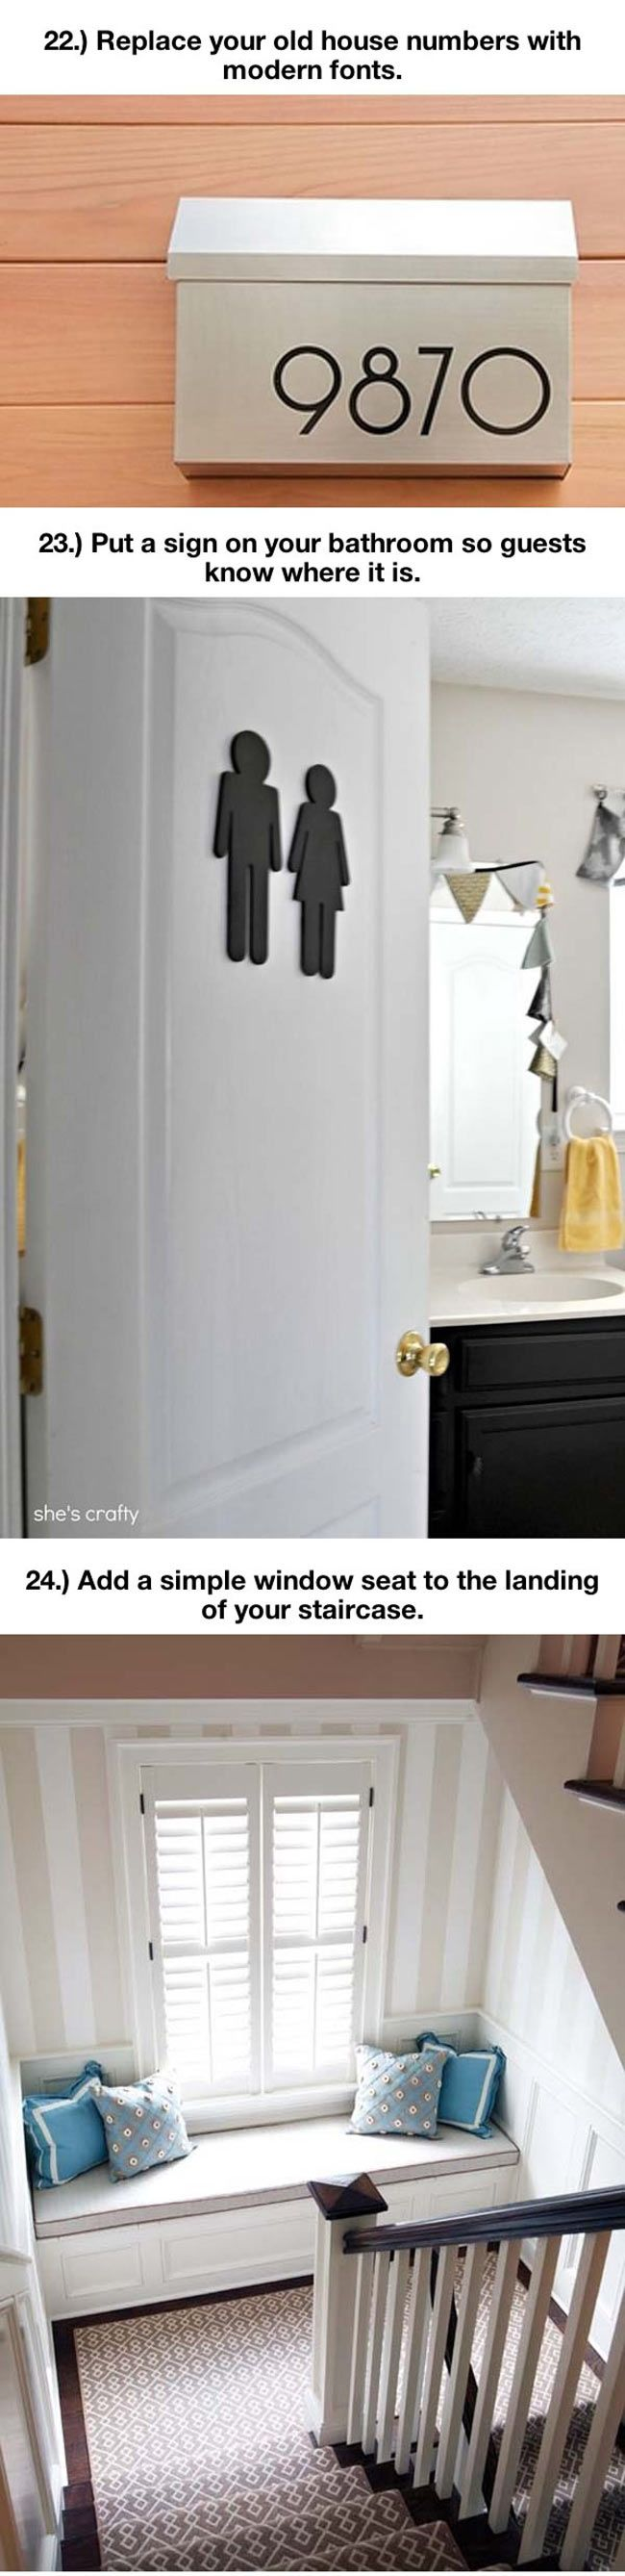 """Sign for guest bathroom door and stair landing window seat, from """"Things That Will Make Your Home Extremely Awesome"""" via The Meta Picture"""